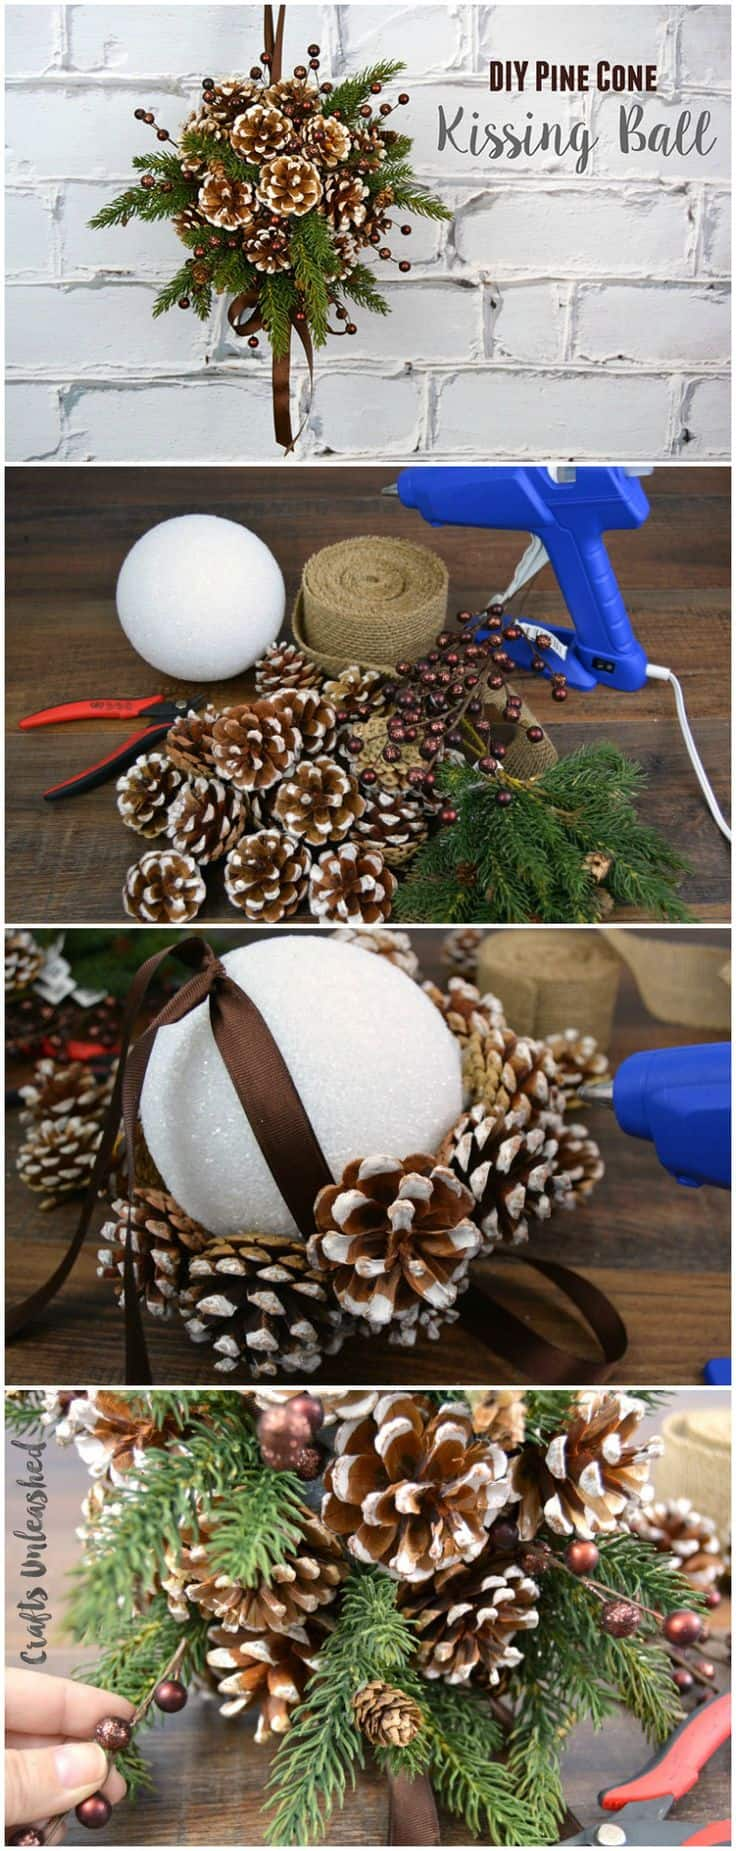 DIY pine cone crafts kissing ball